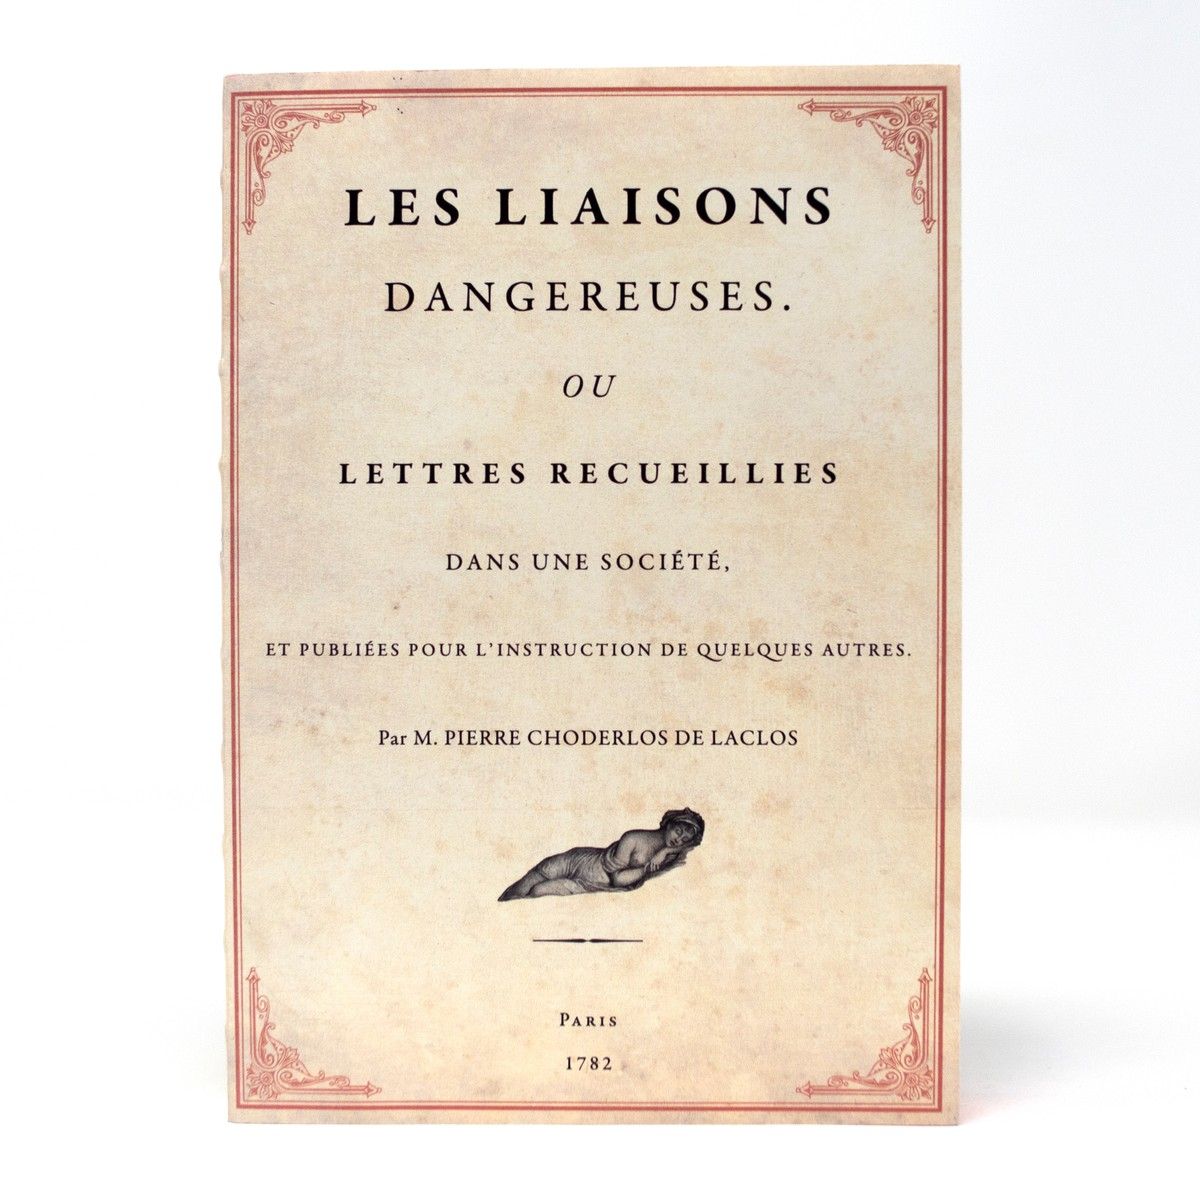 Photo of Les Liaisons Dangereuse Notebook